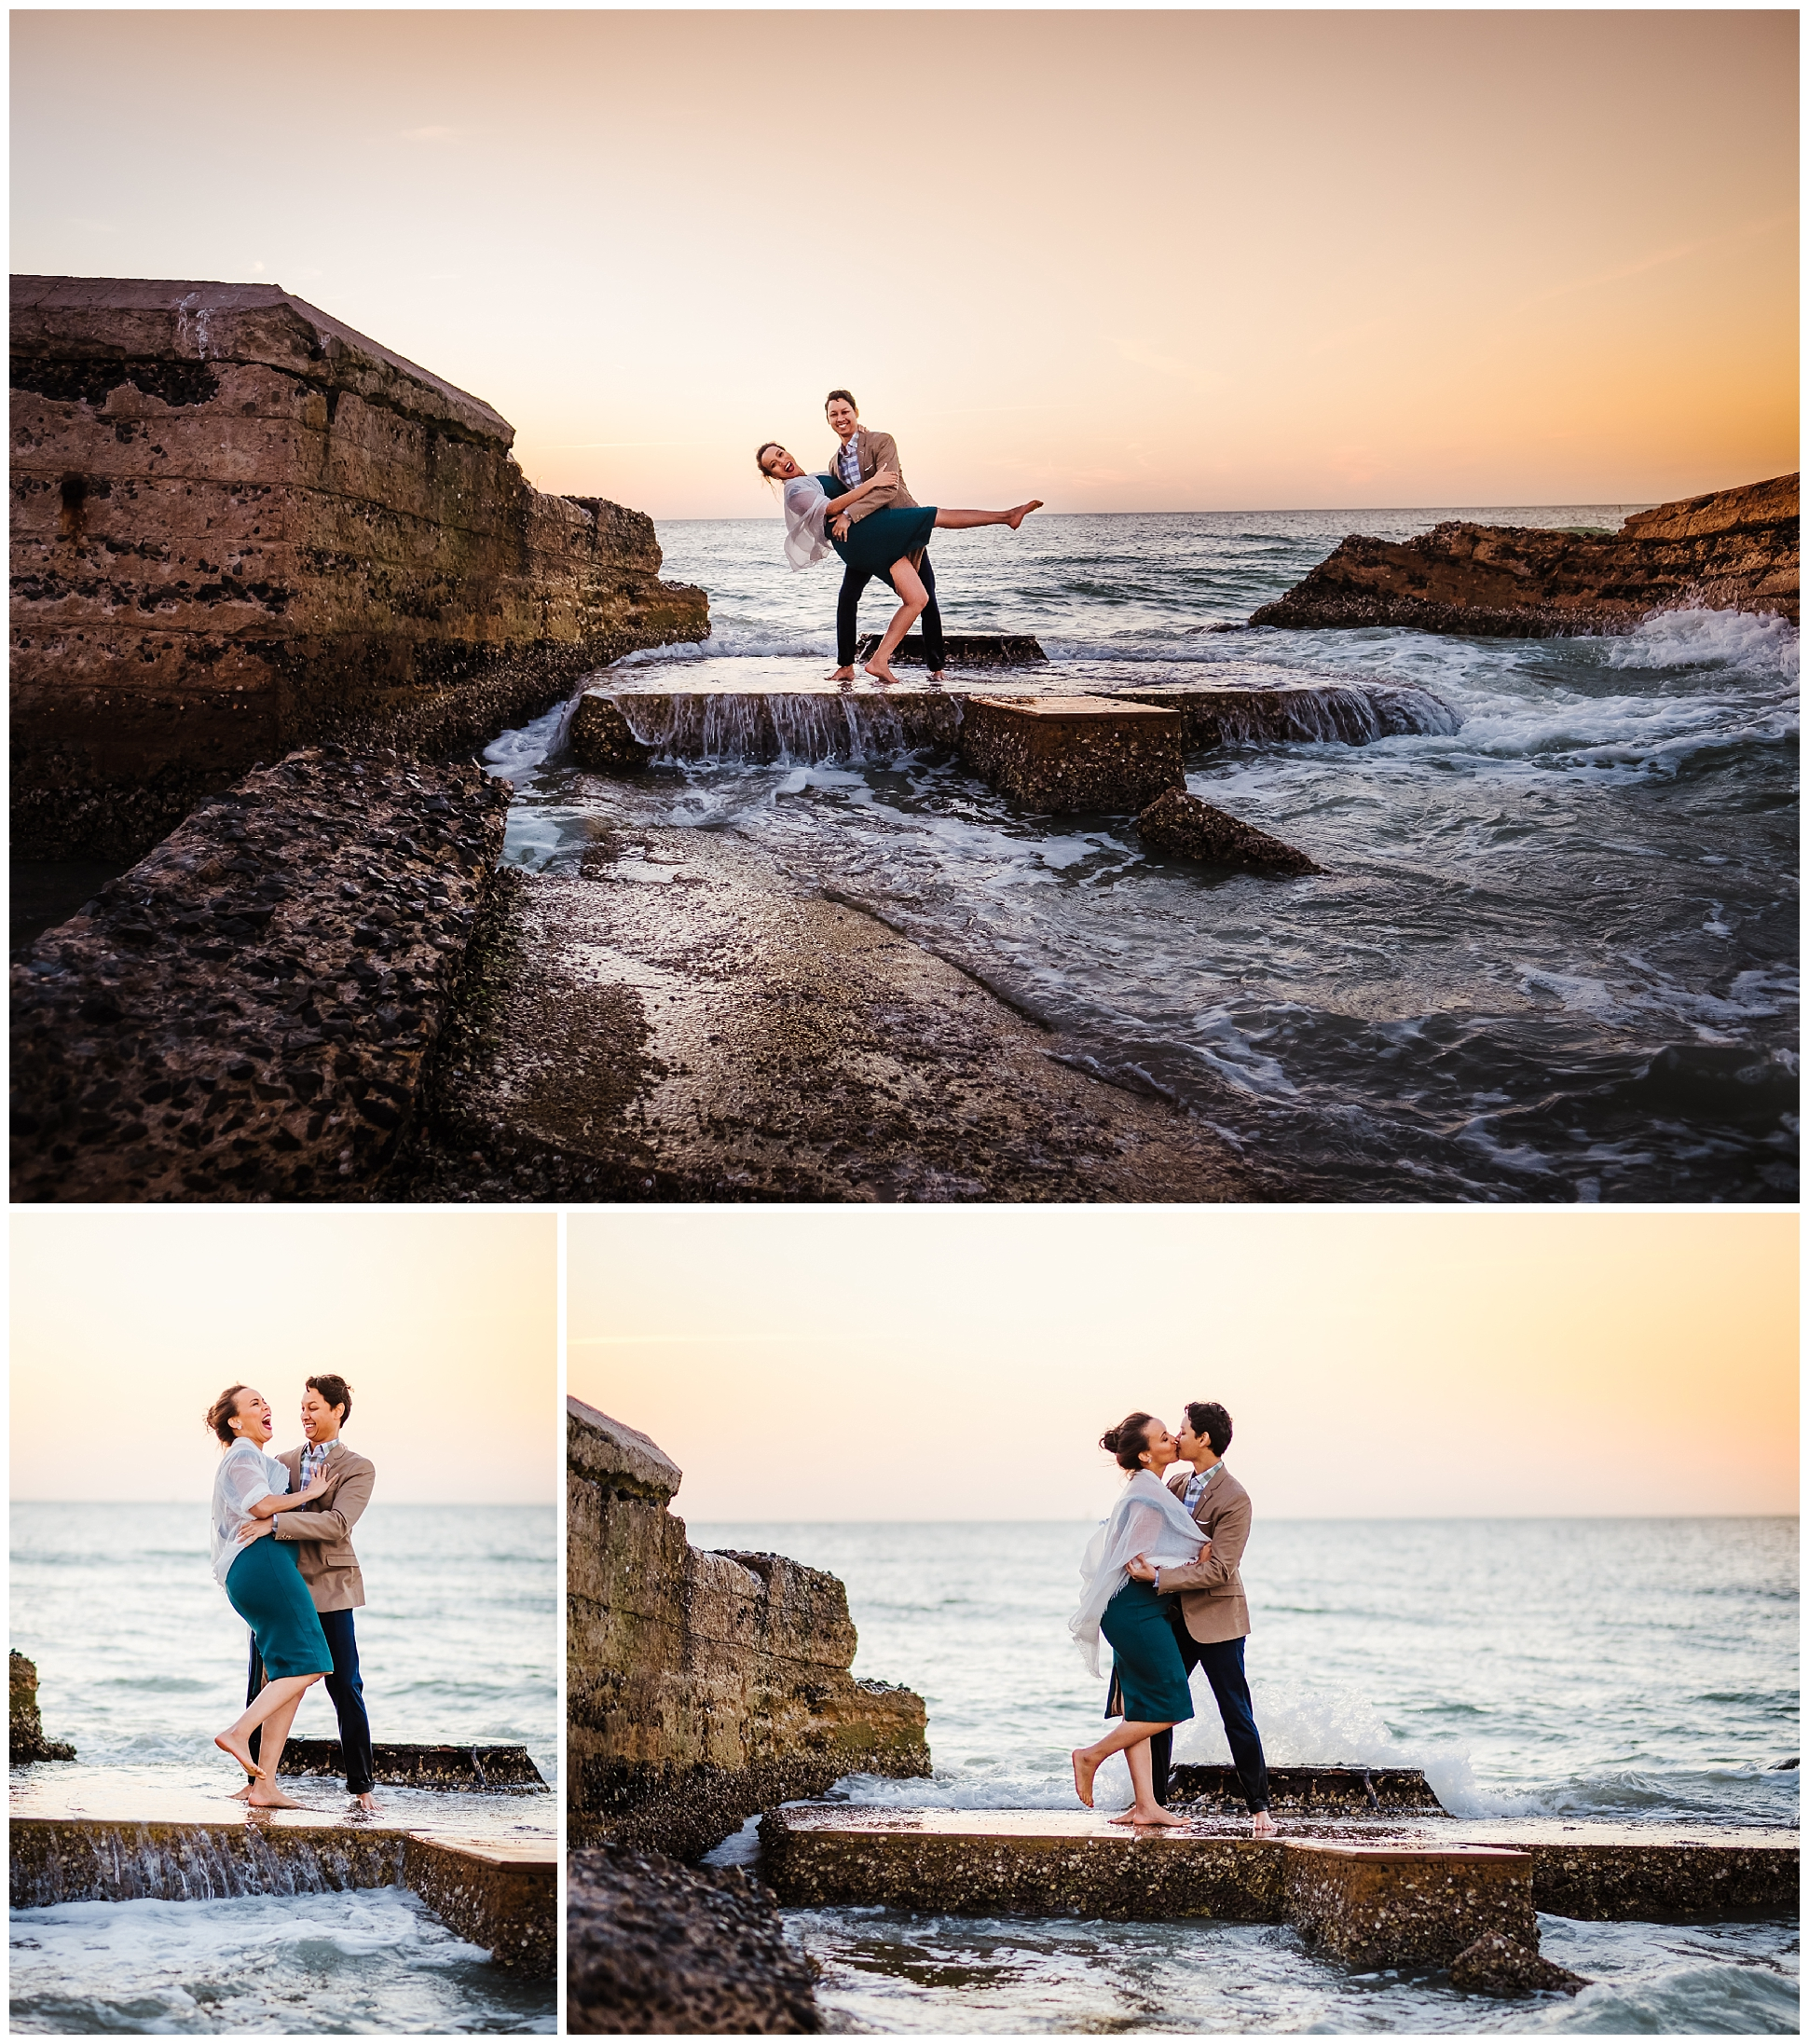 tampa-engagement-photographer-fort-desoto-ruins-sunset-colorful_0022.jpg